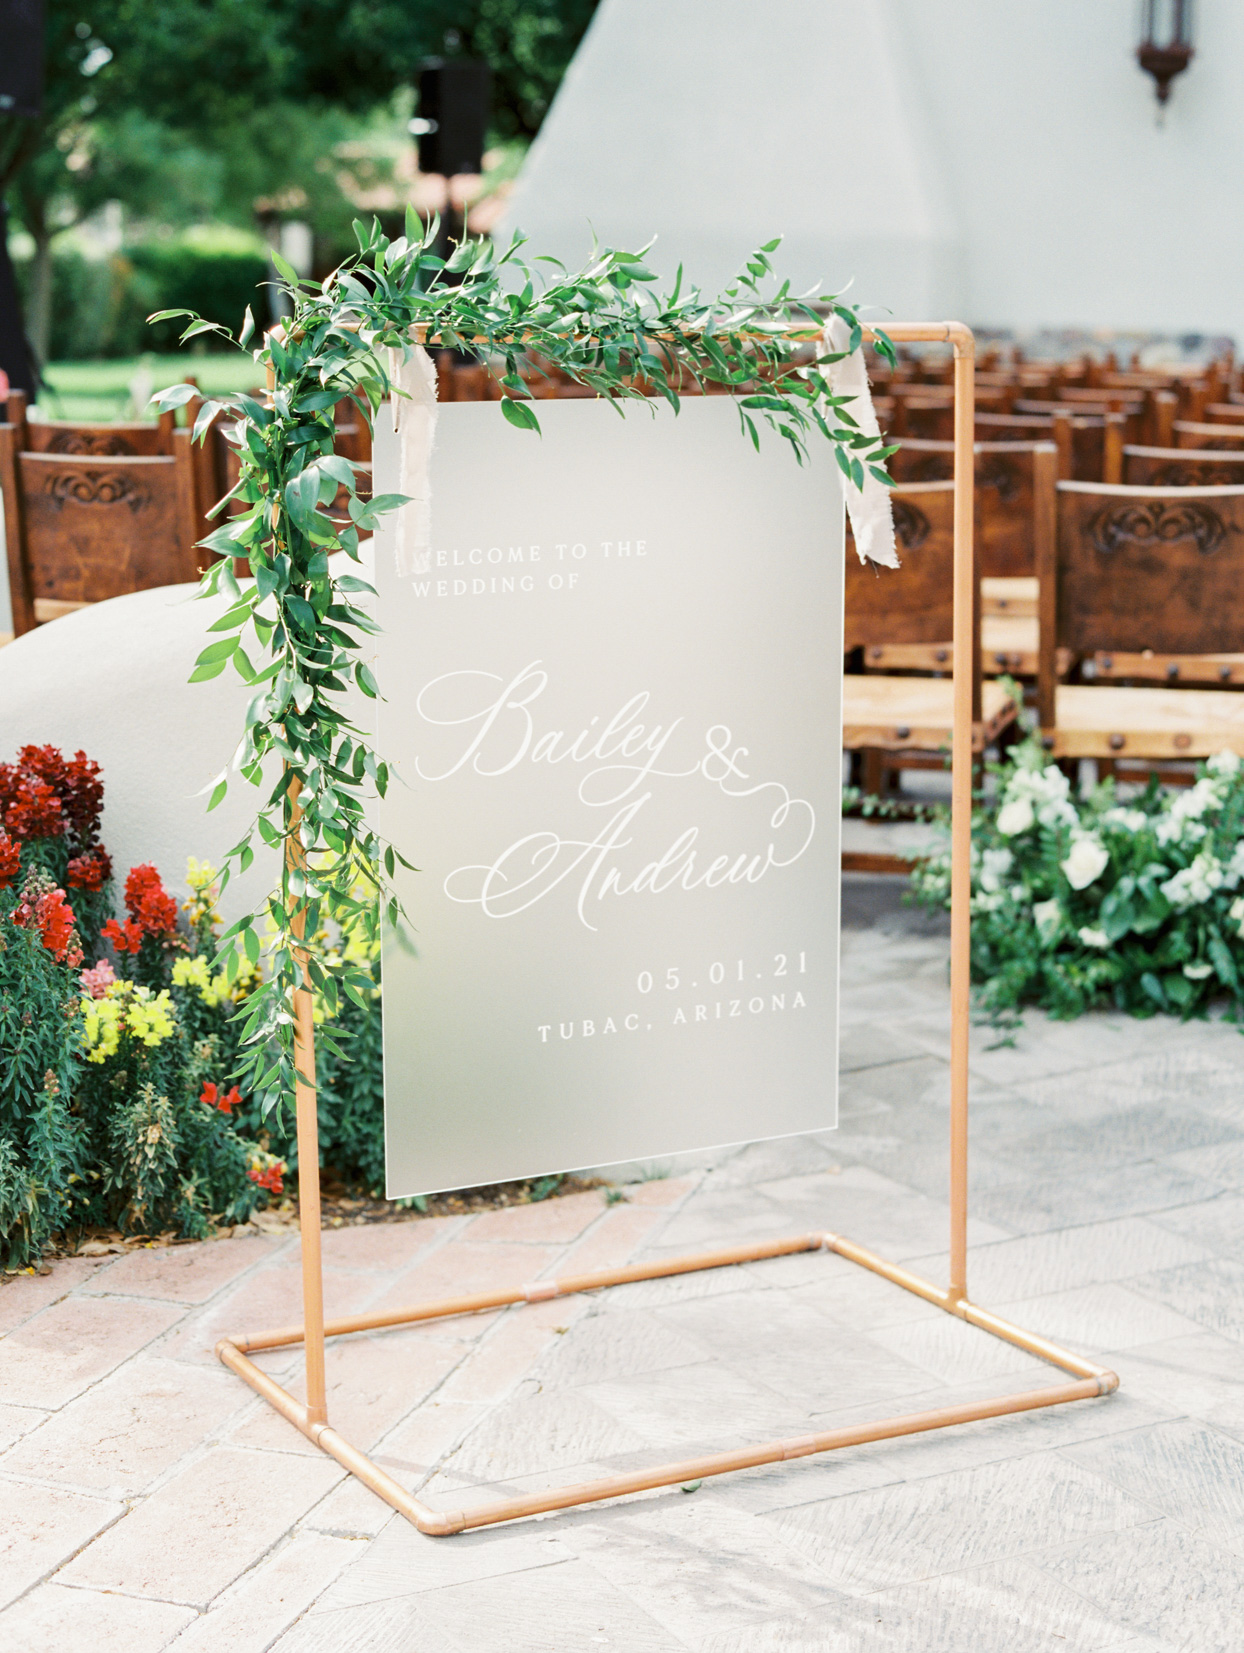 foggy white wedding sign hung on gold pipes with greenery decor